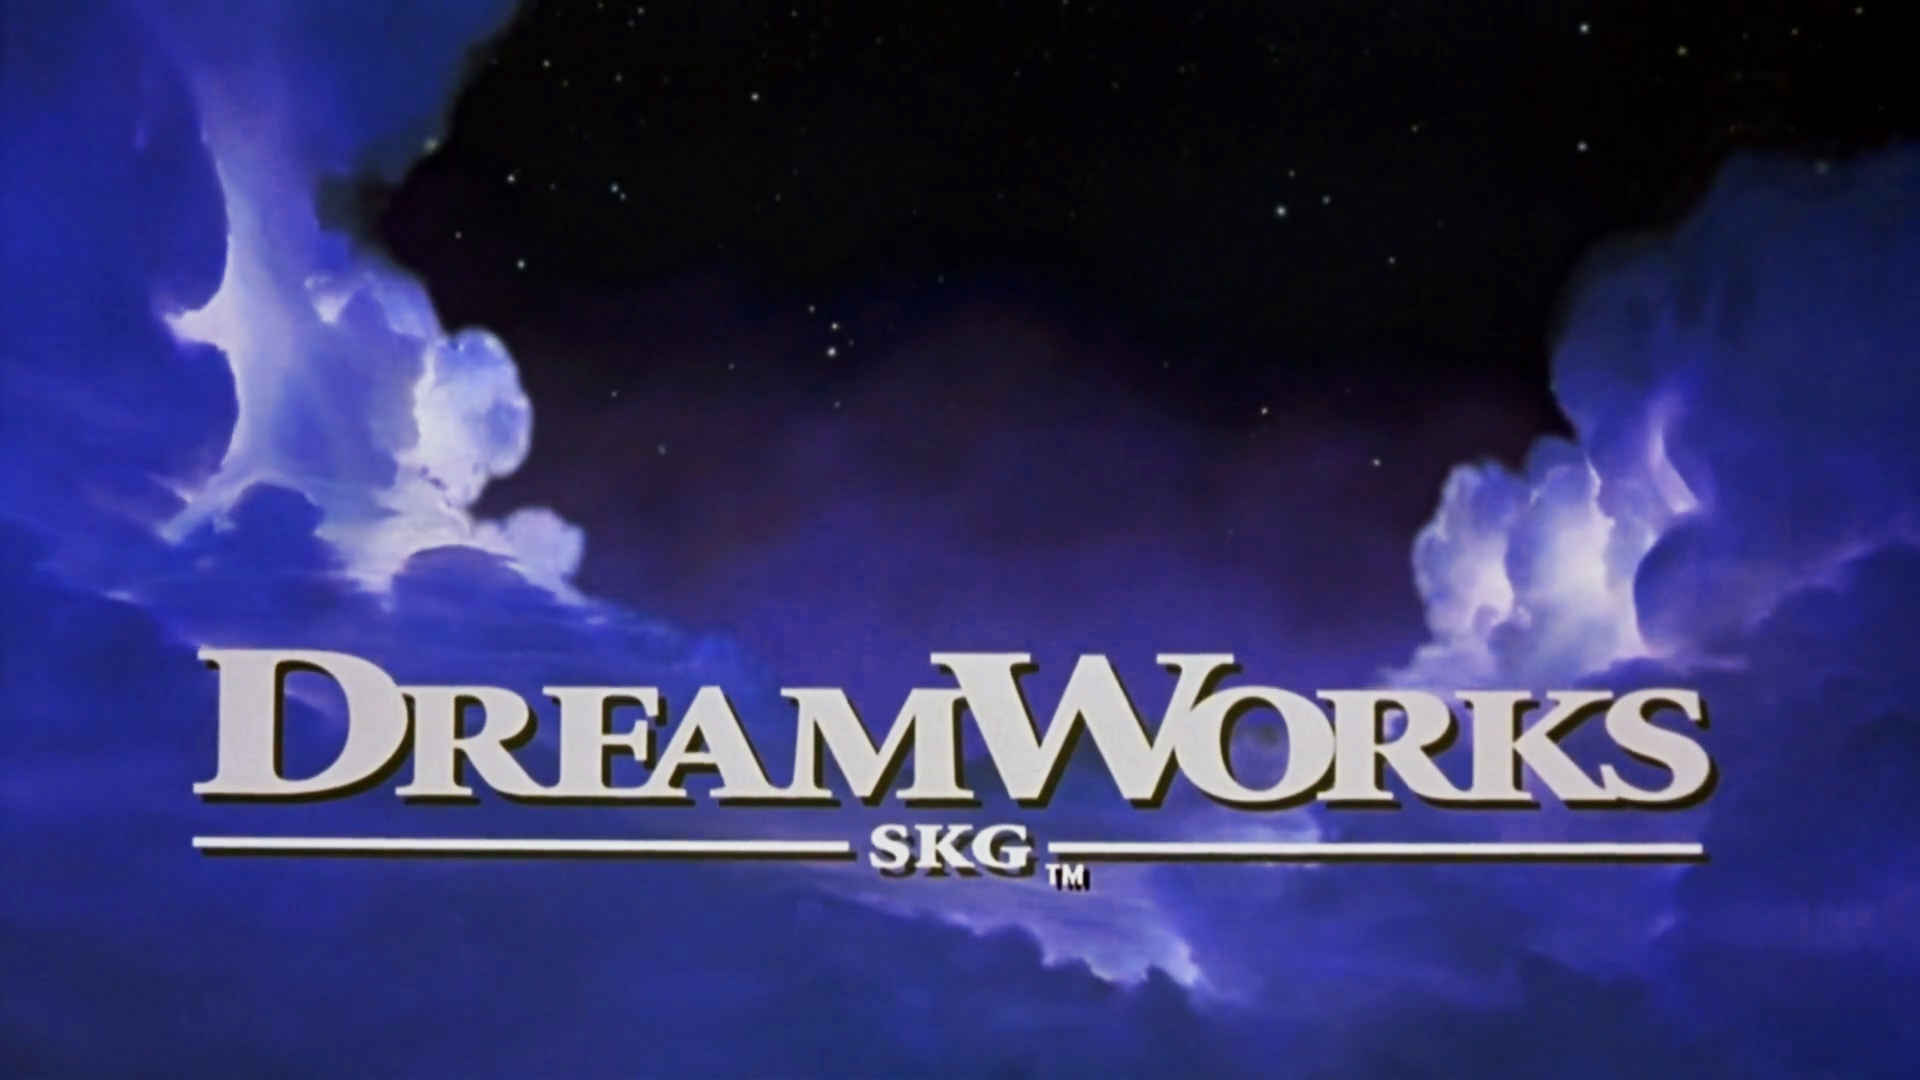 DreamWorks Pictures/On Screen-Logos